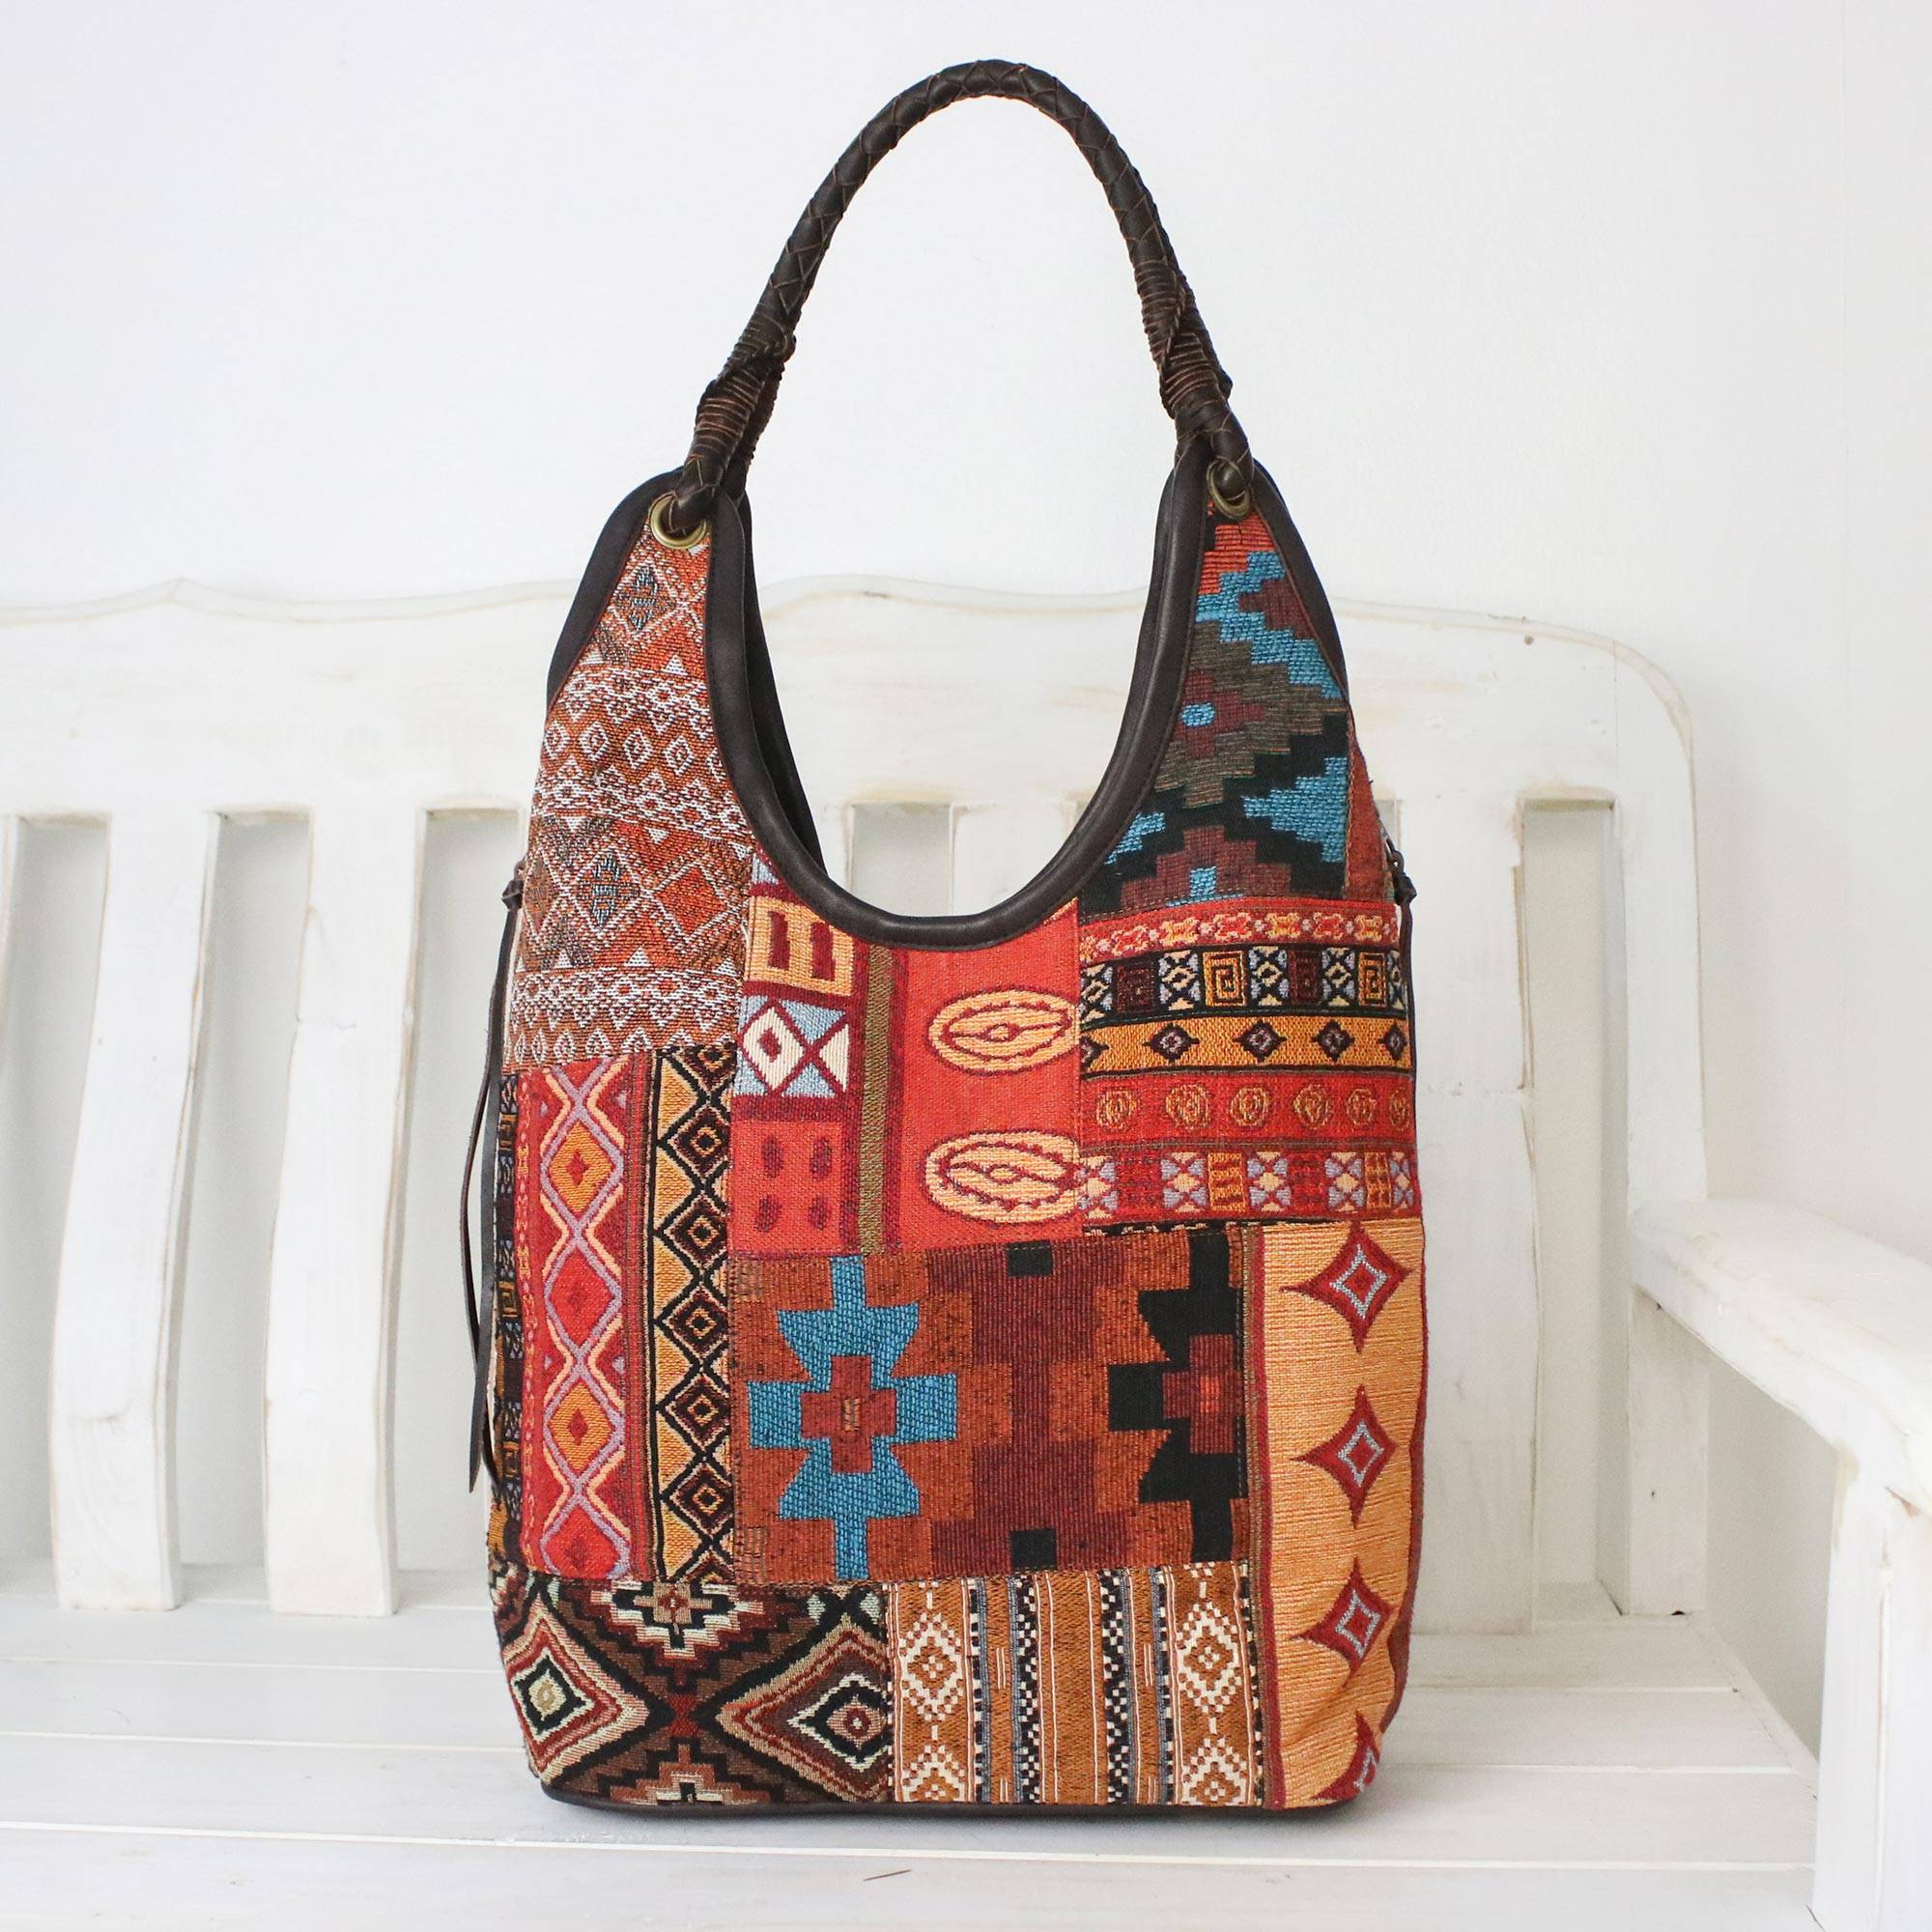 Handmade Cotton Blend Patchwork Red Hobo Bag Leather Trim Perfect In